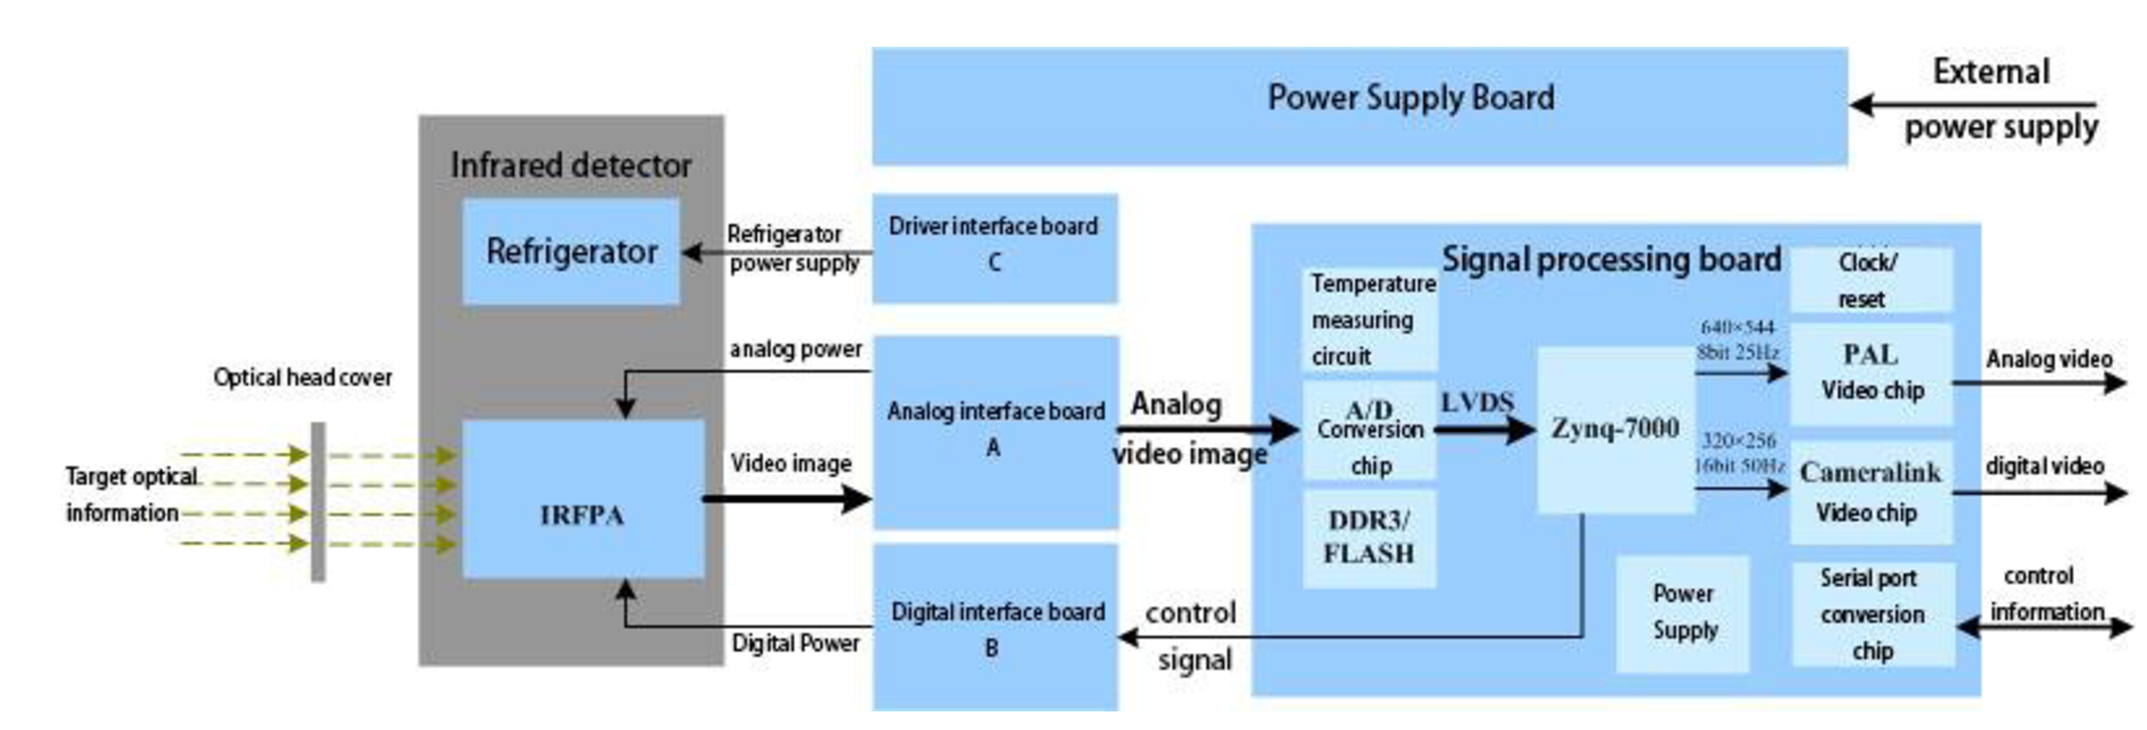 IR imaging pre-processing system design based on Zynq-7000